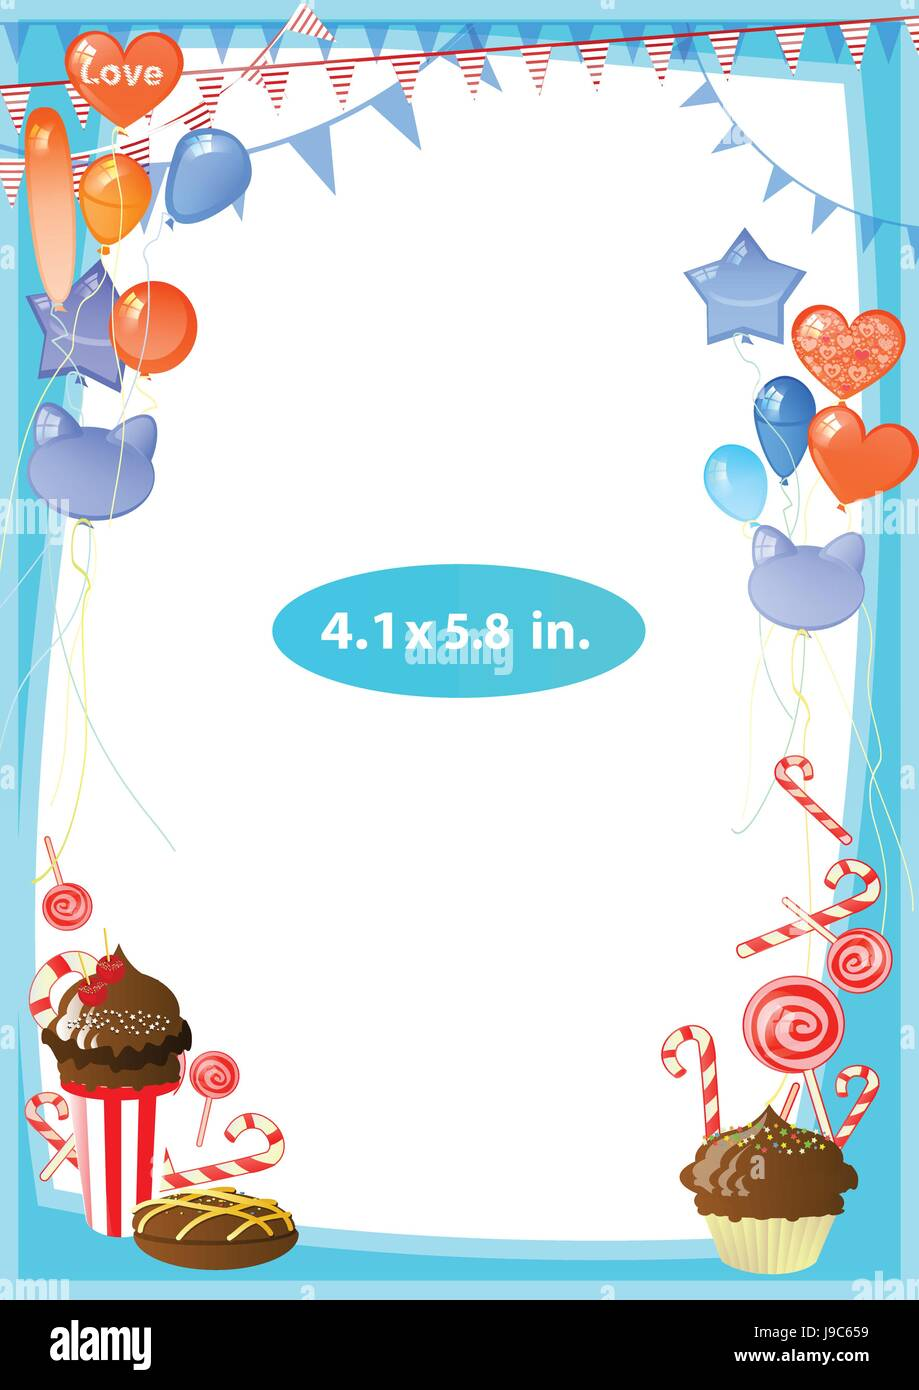 7ddb574cf51a Photo frame. Standard photo size in inches. Vector illustration for your  design. Vertical arrangement of the sheet. Blue frame with balloons